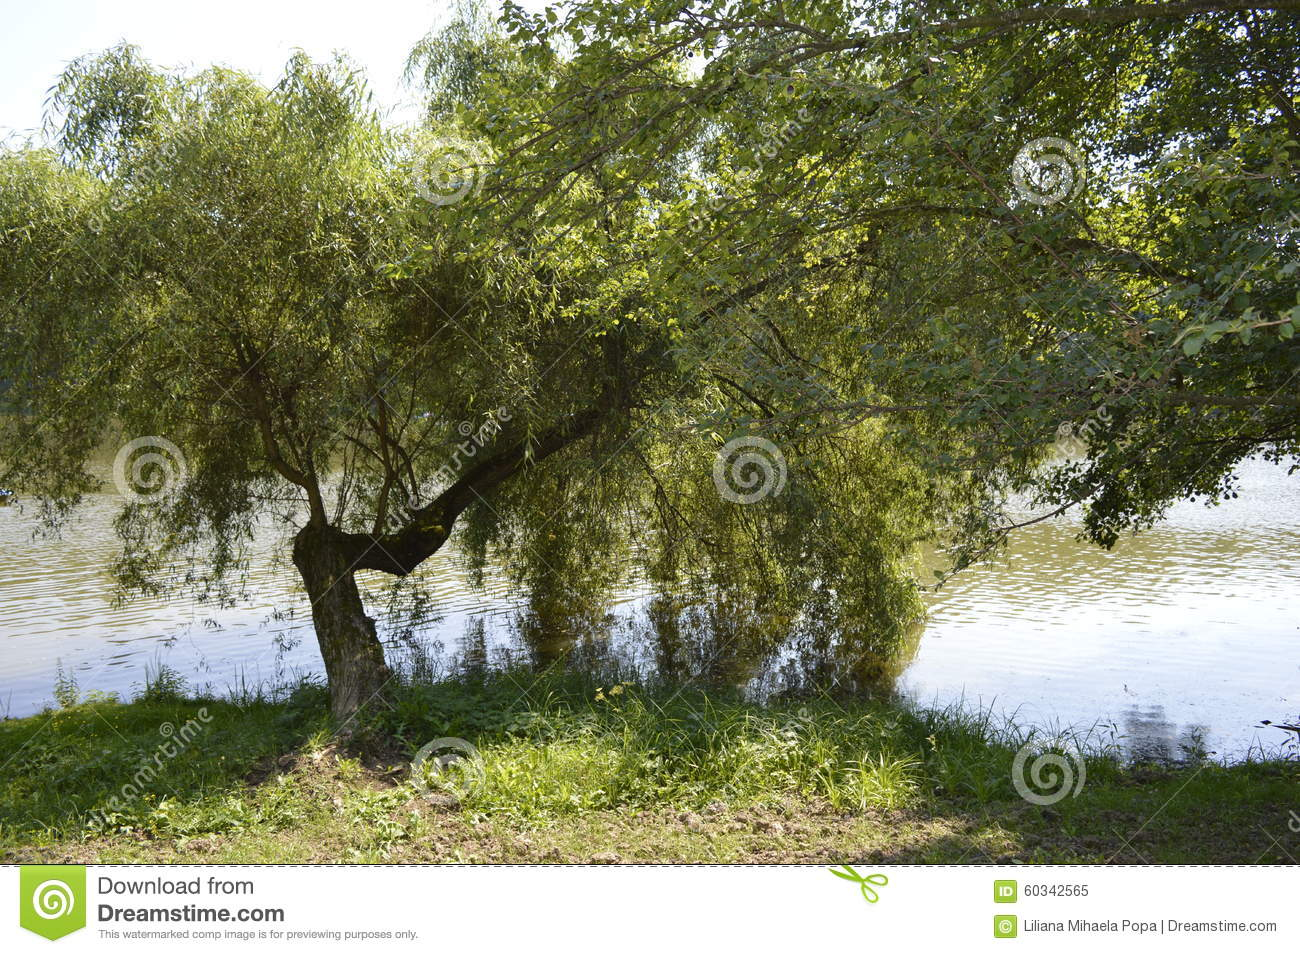 weeping willow on a lake.